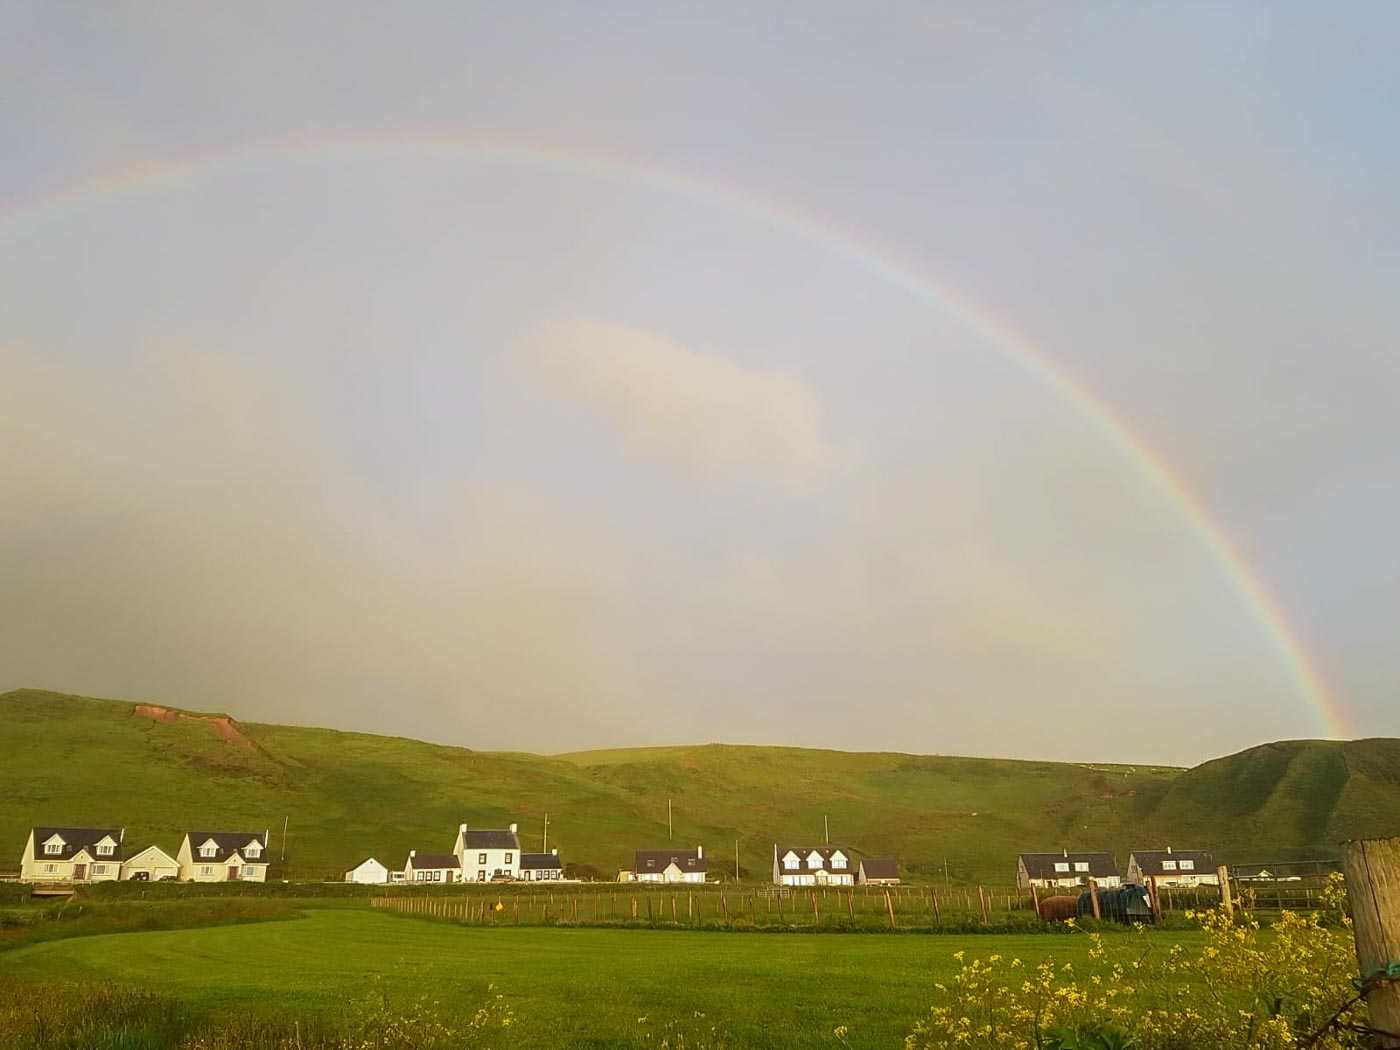 About ten buildings, with gaps between some of them, stand low and are almost hidden by the large green hills in the background. The sky is wide and slightly cloudy, but a huge rainbow arcs above the village.